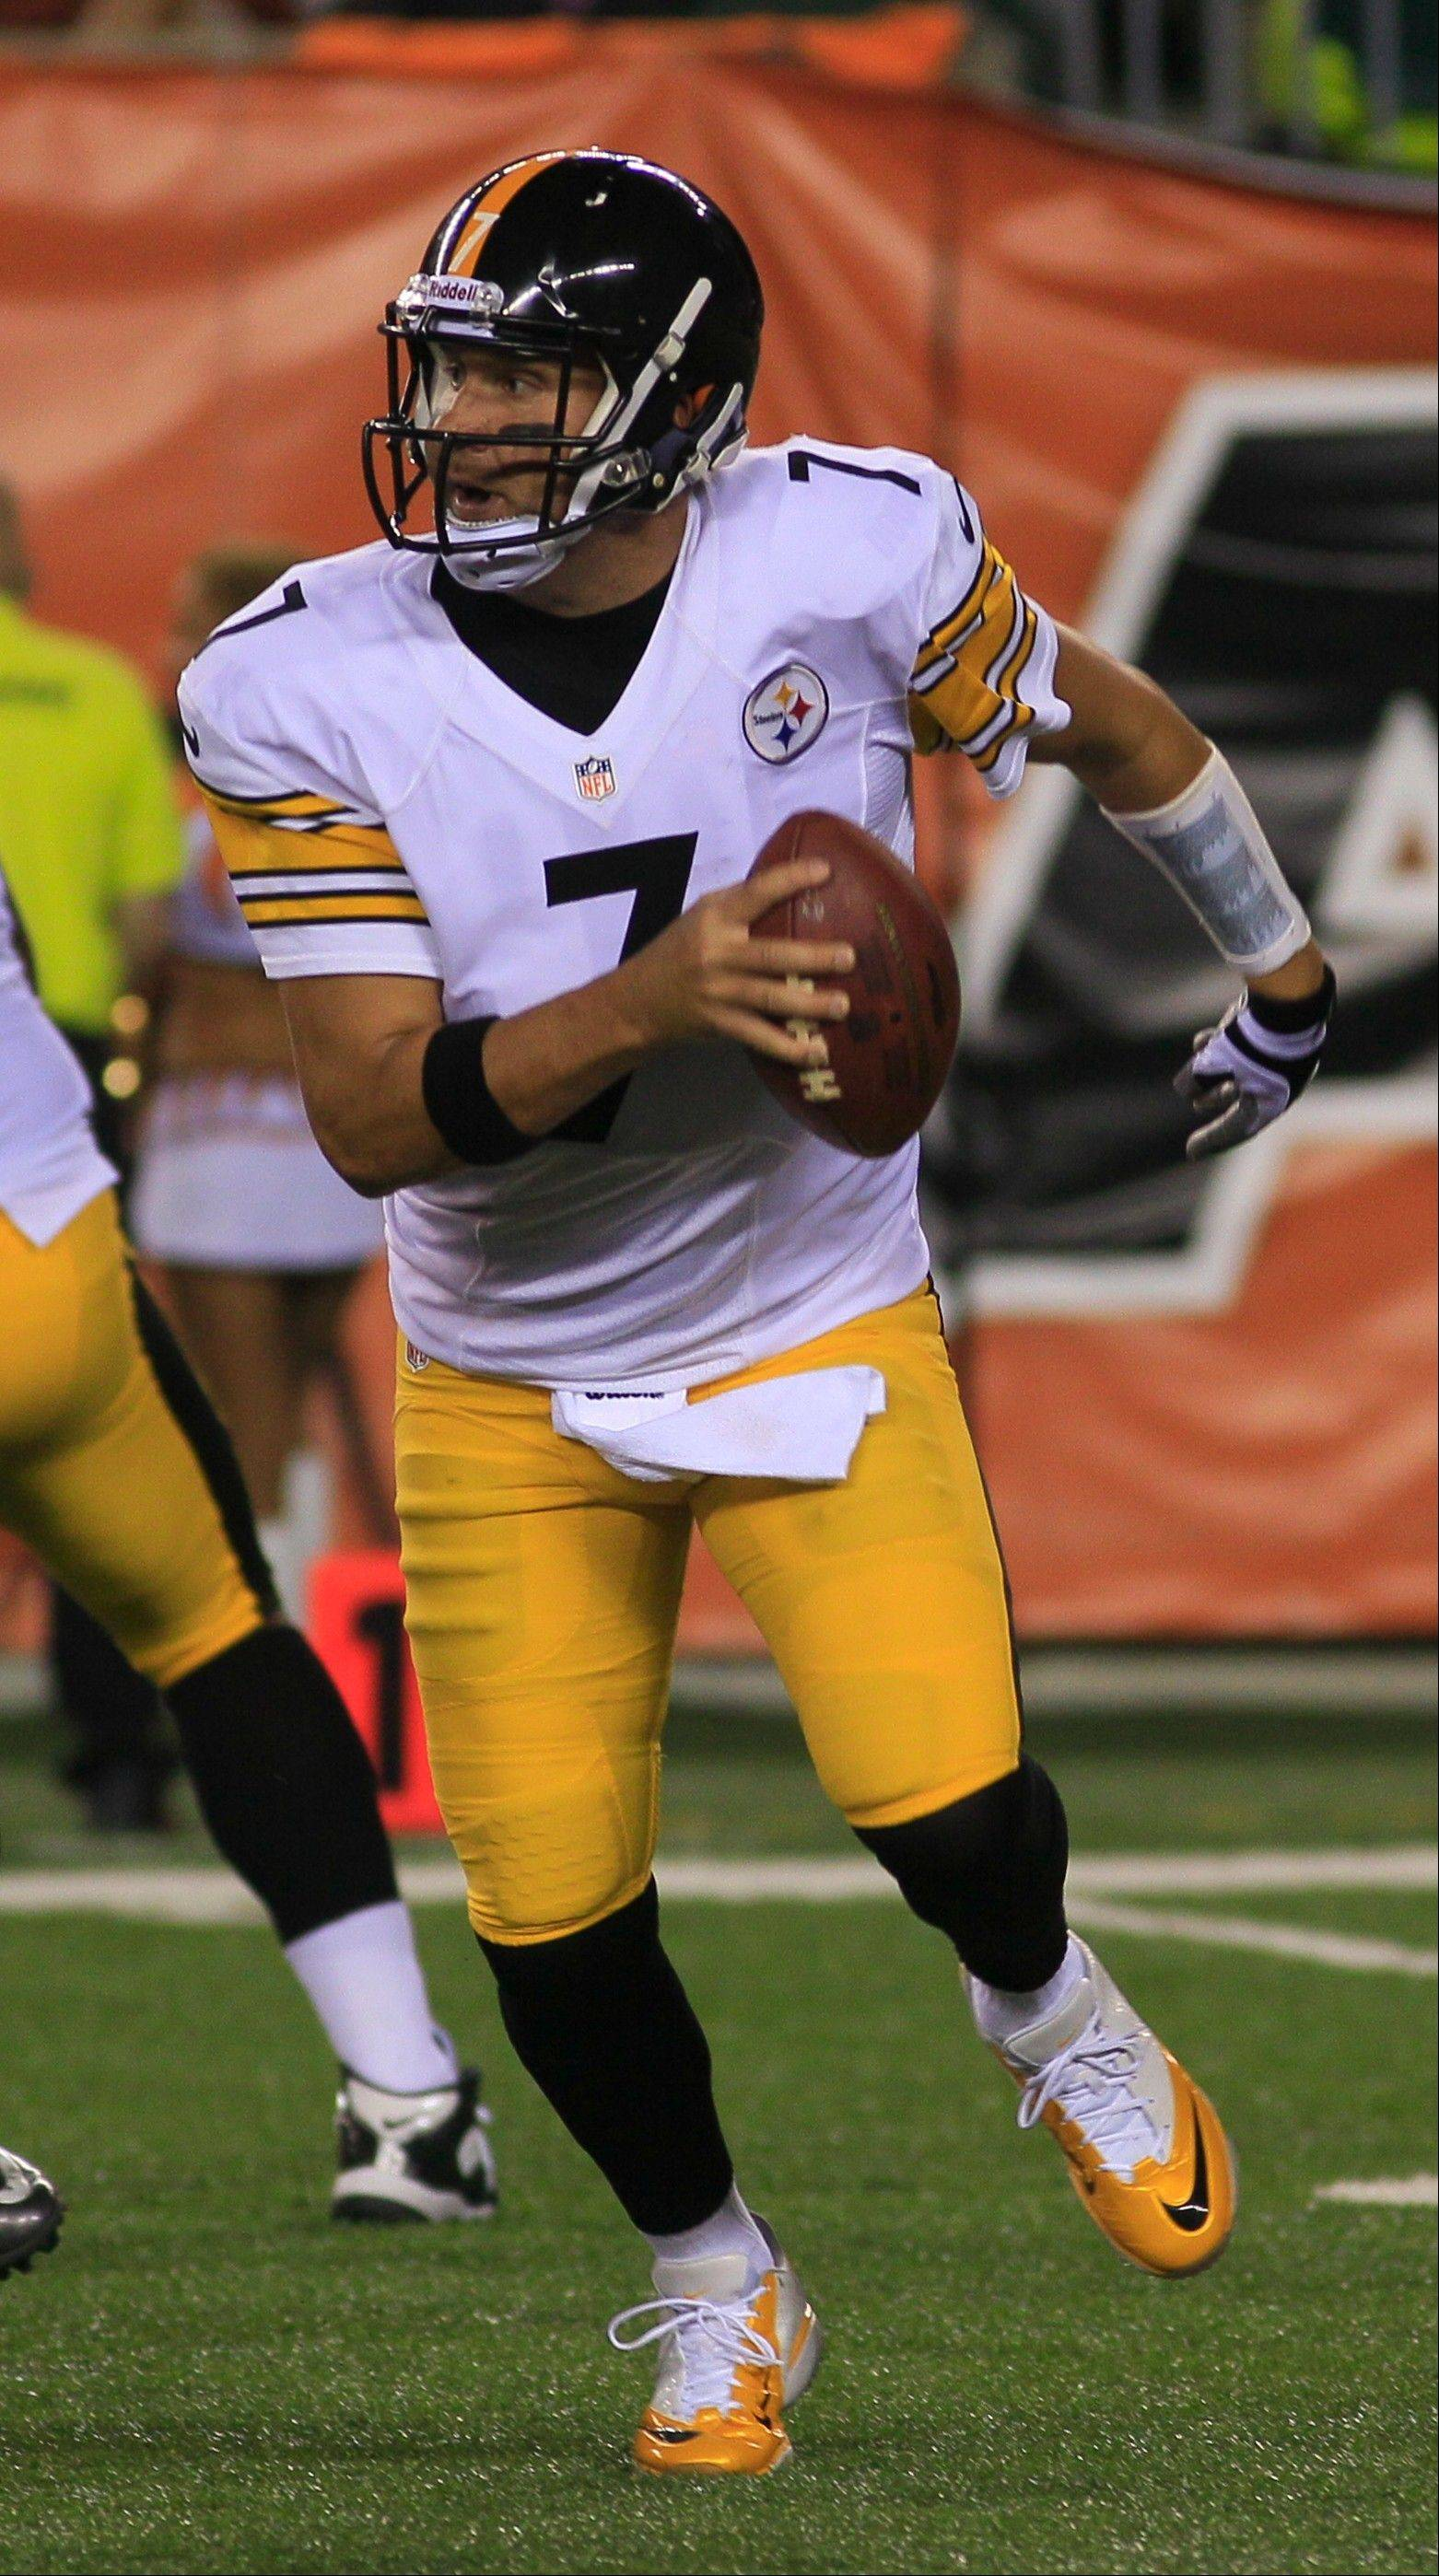 Pittsburgh Steelers quarterback Ben Roethlisberger rolls out against the Cincinnati Bengals in the second half of an NFL football game, Monday, Sept. 16, 2013, in Cincinnati.